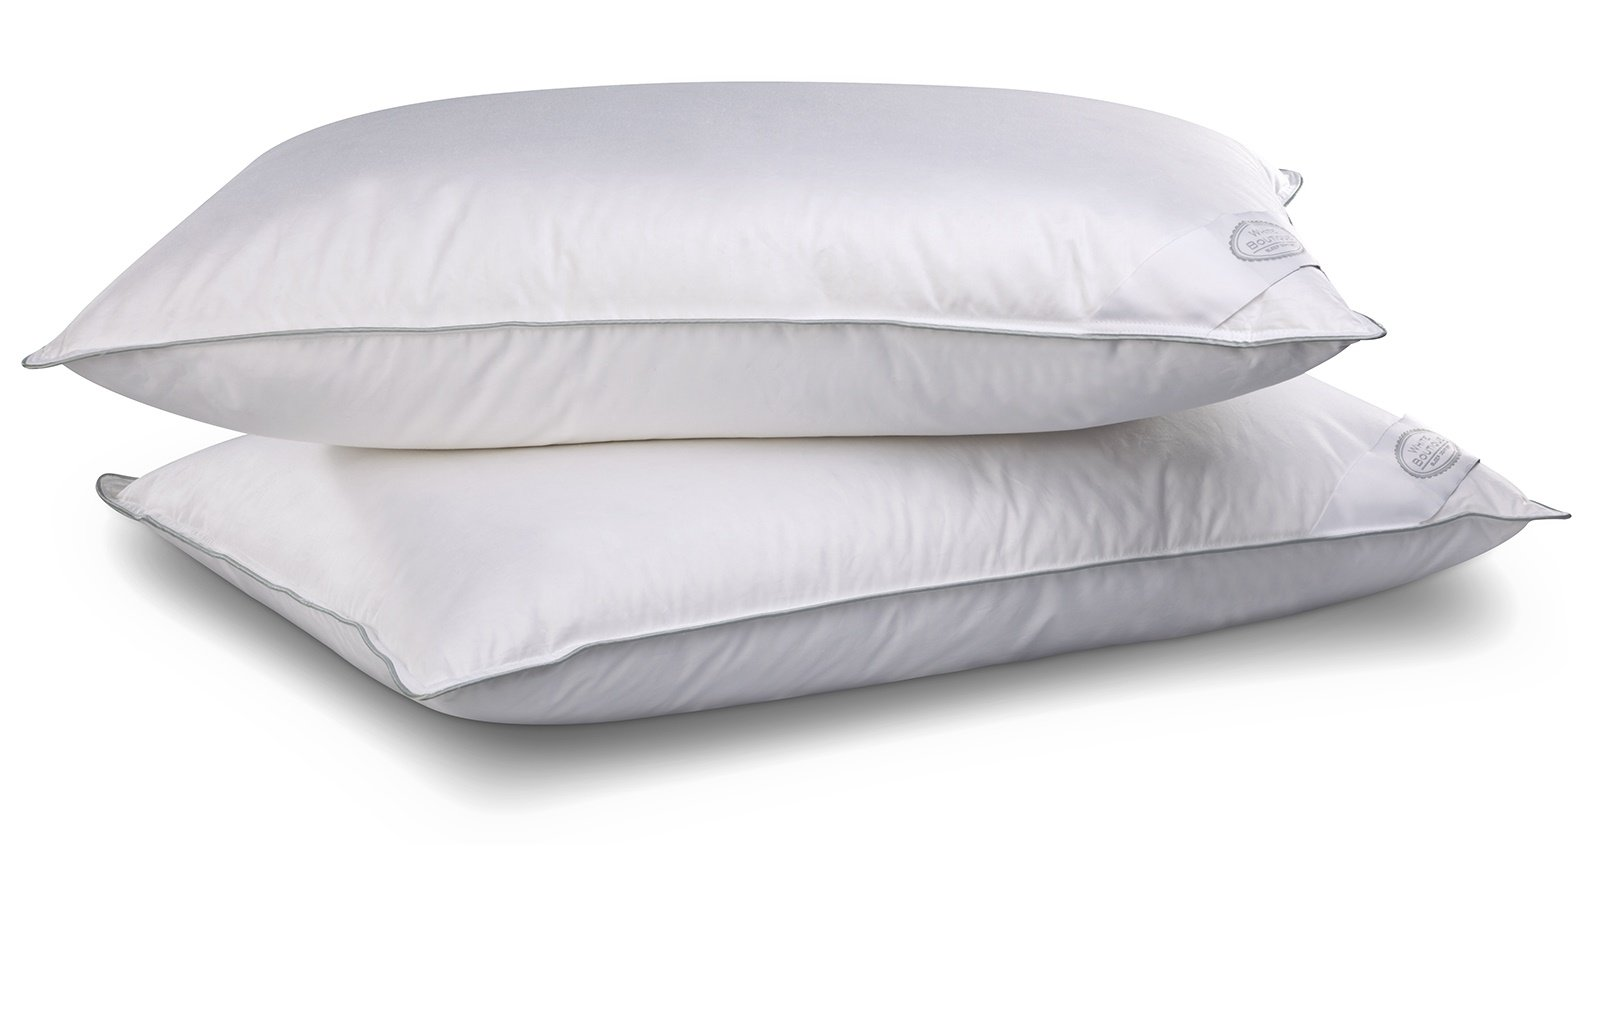 PERLA- Luxury Goose Down Pillow- Hypoallergenic- Cool sleeping- 90 % Goose Down- 10 % Feathers- Anti Stress Effect-Pack of 4